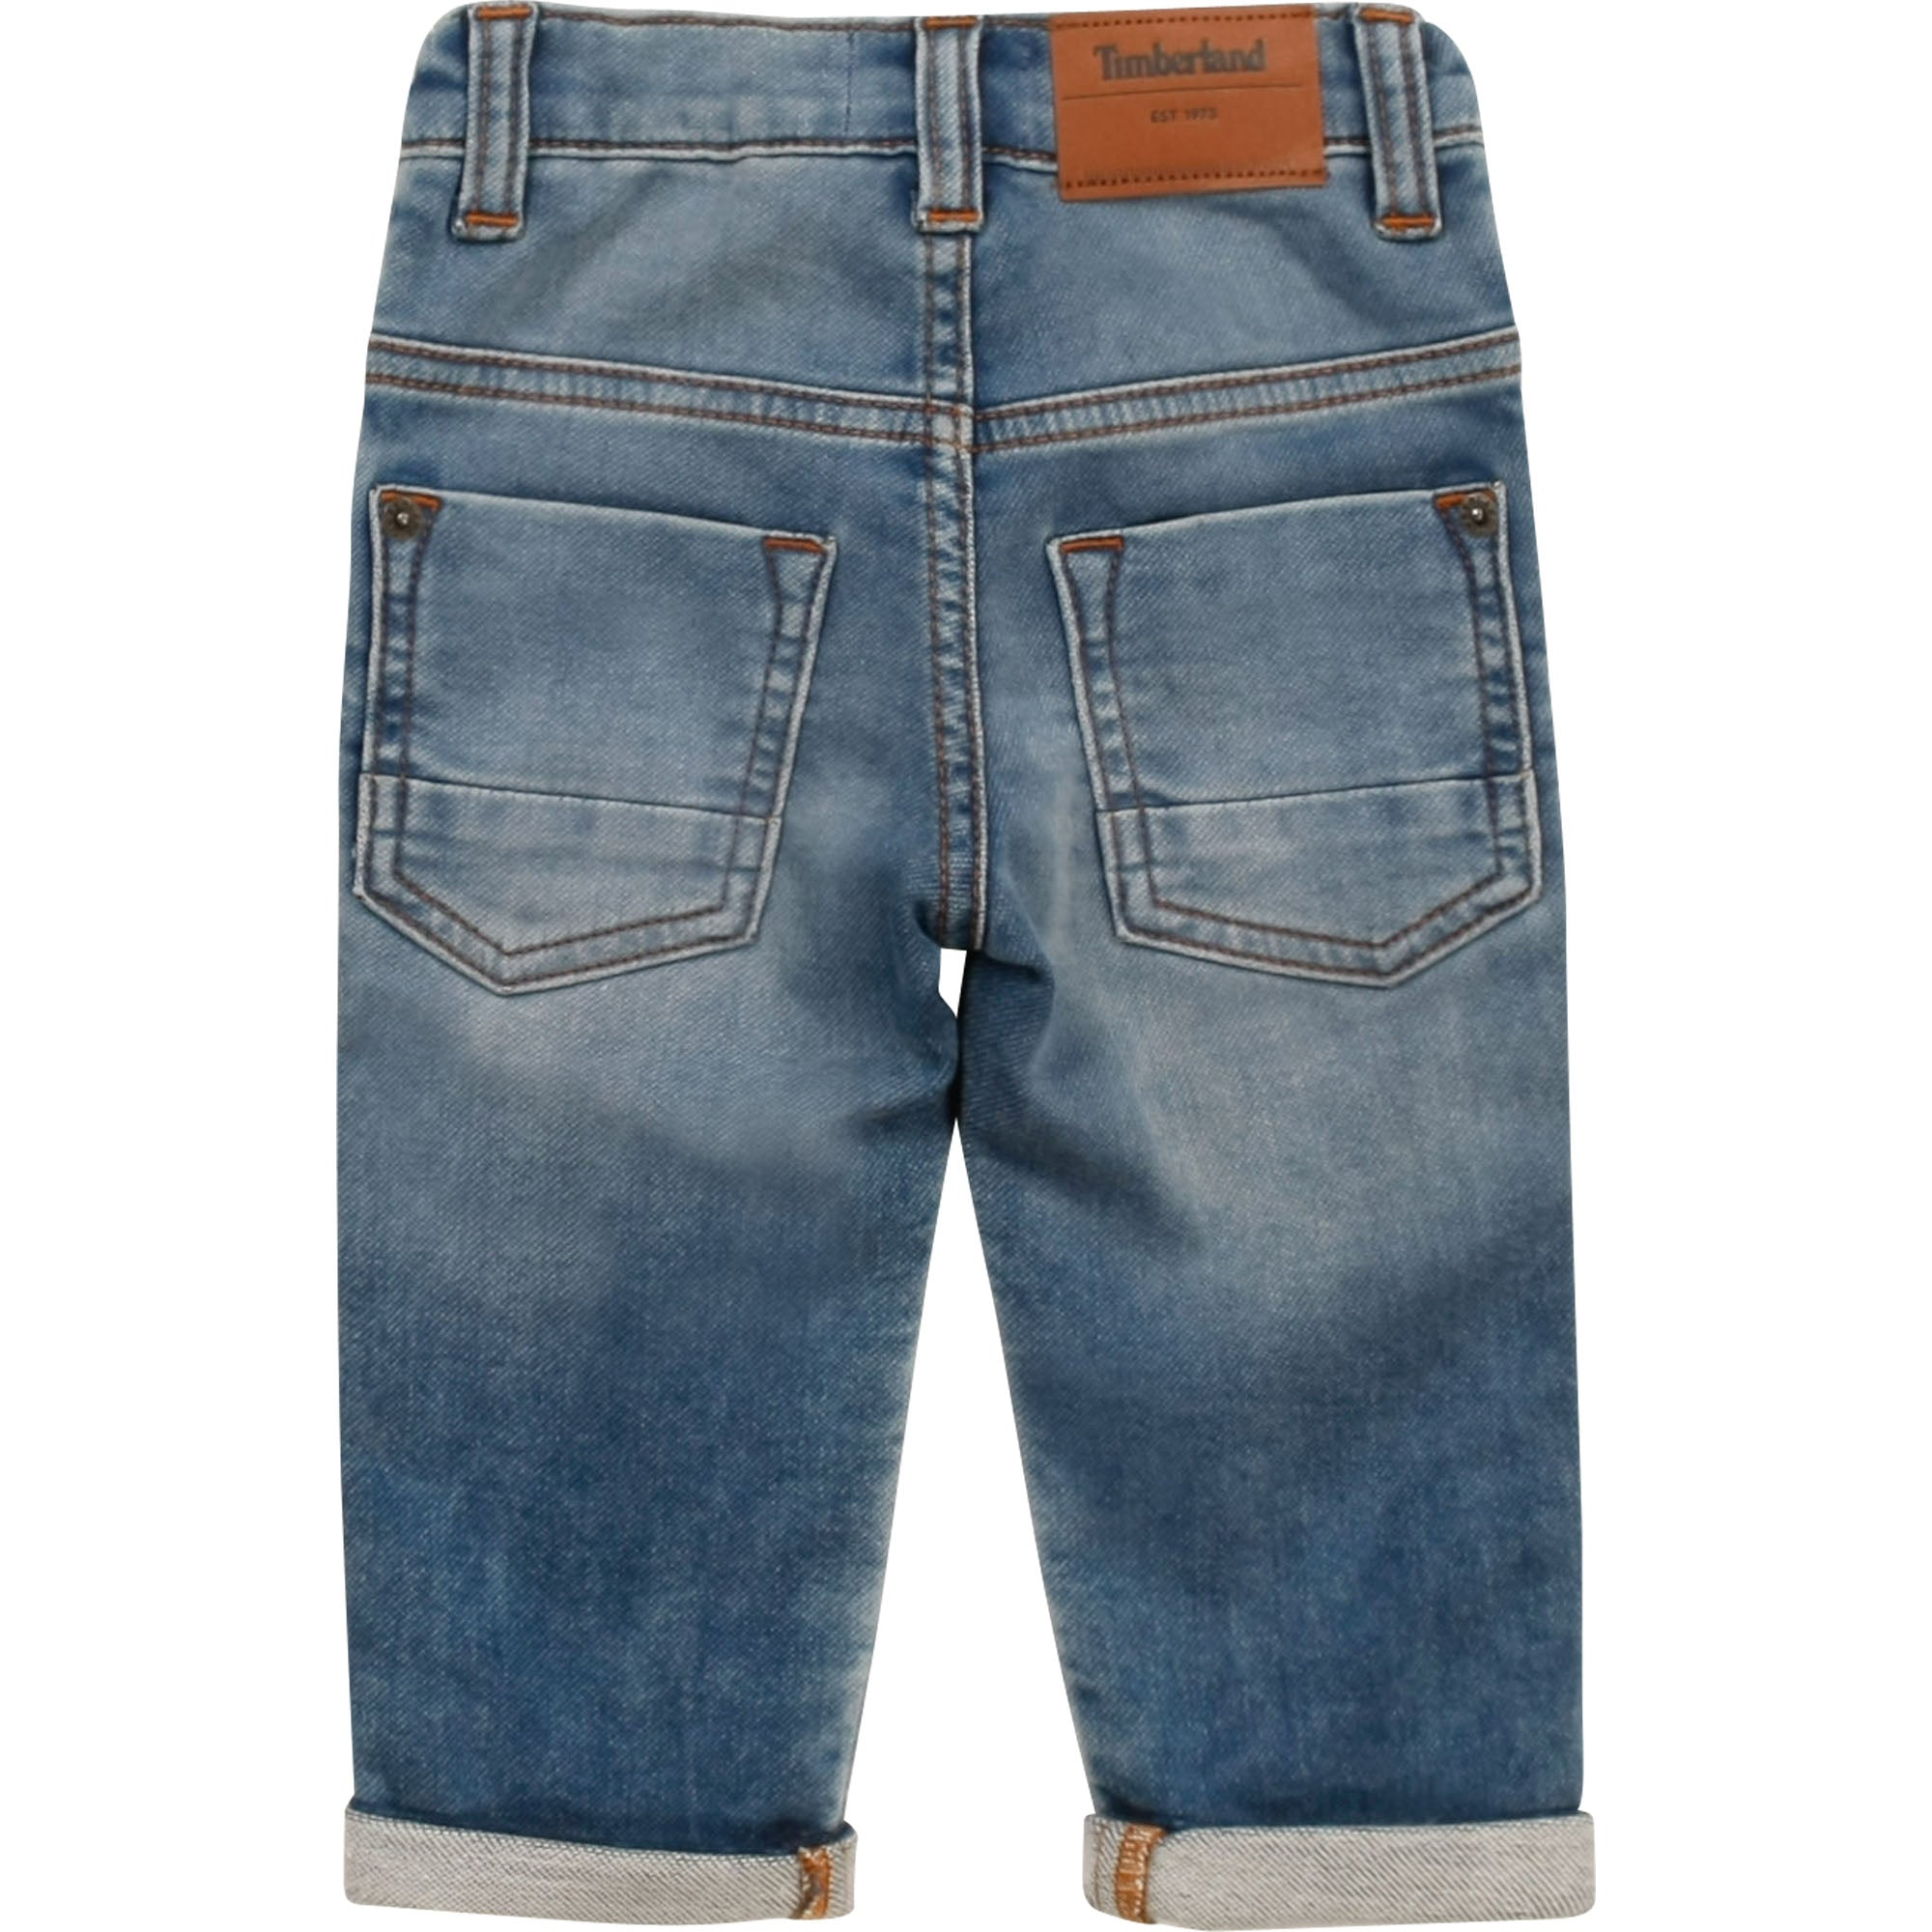 Timberland soft toddler denim jeans